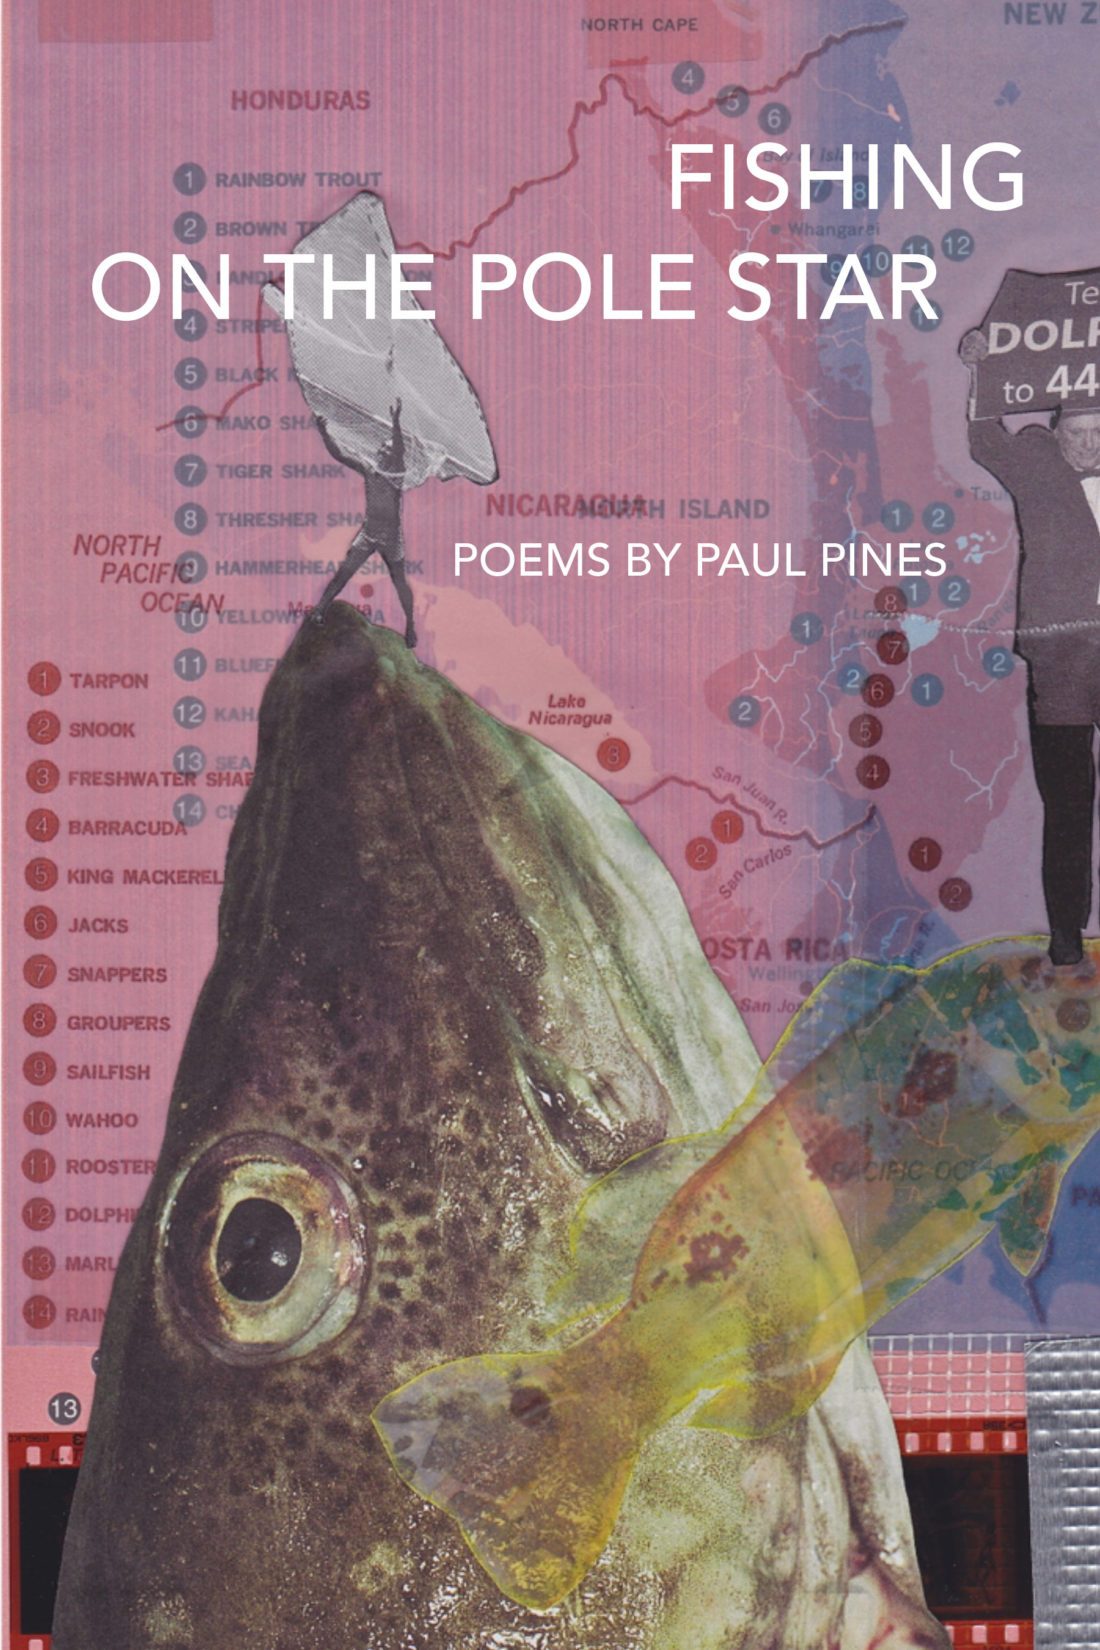 Fishing on the Pole Star by Paul Pines